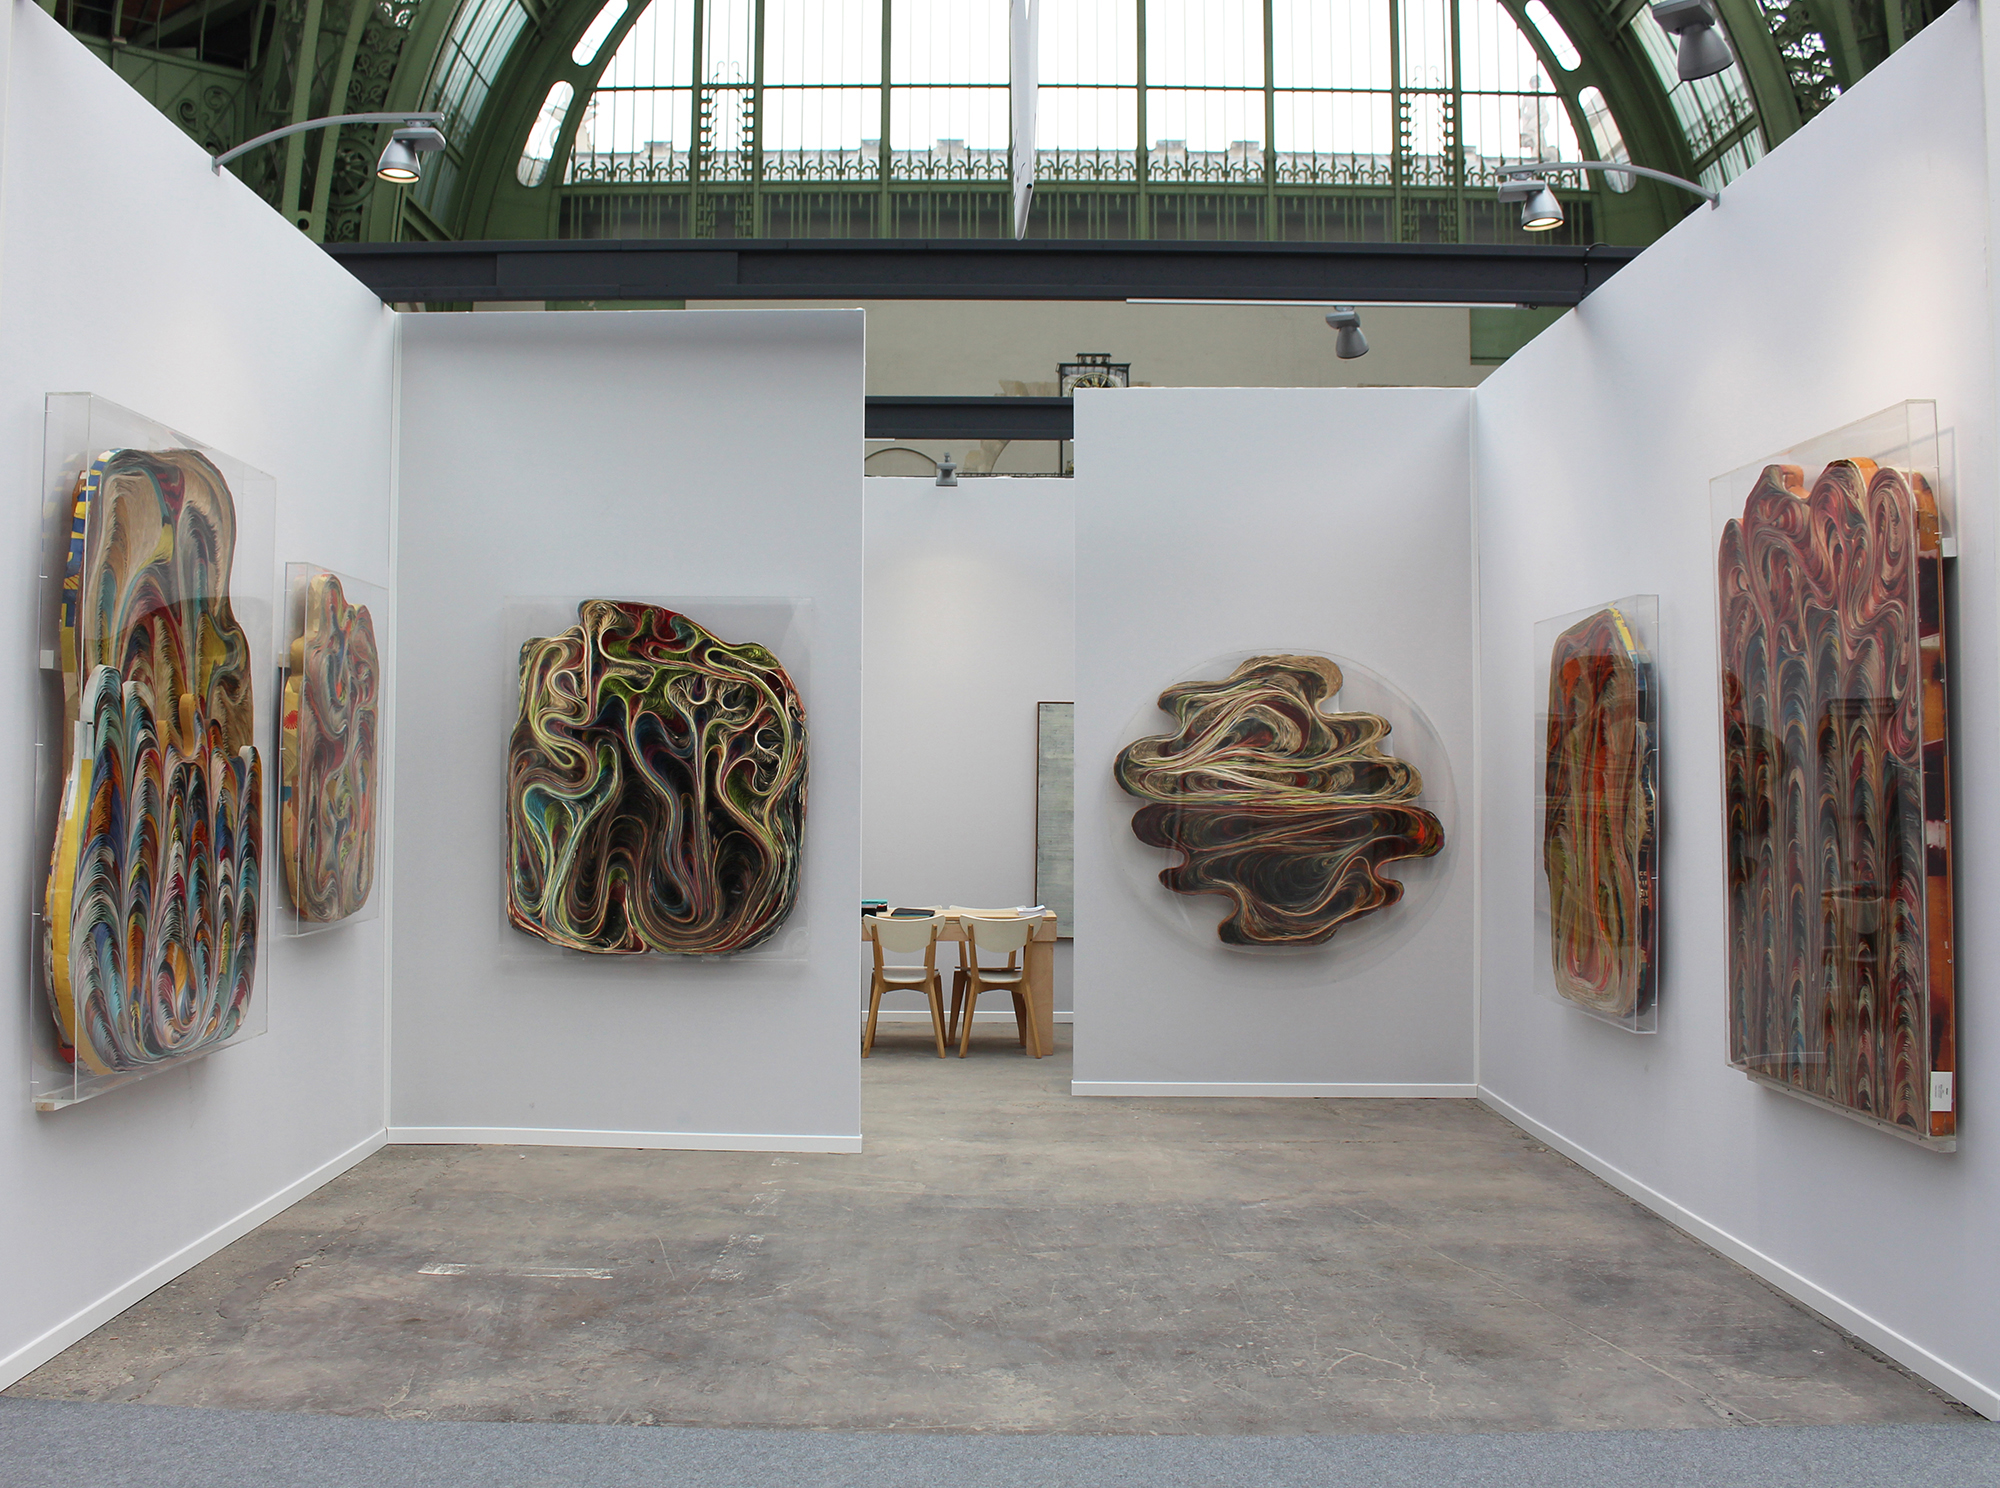 Art Paris Art Fair – Booth E13 / Sobering Galerie at Art Paris Art Fair (booth E13), exhibition view, March 30th - April 2nd 2017, Pavlos' Baroque series (1966)